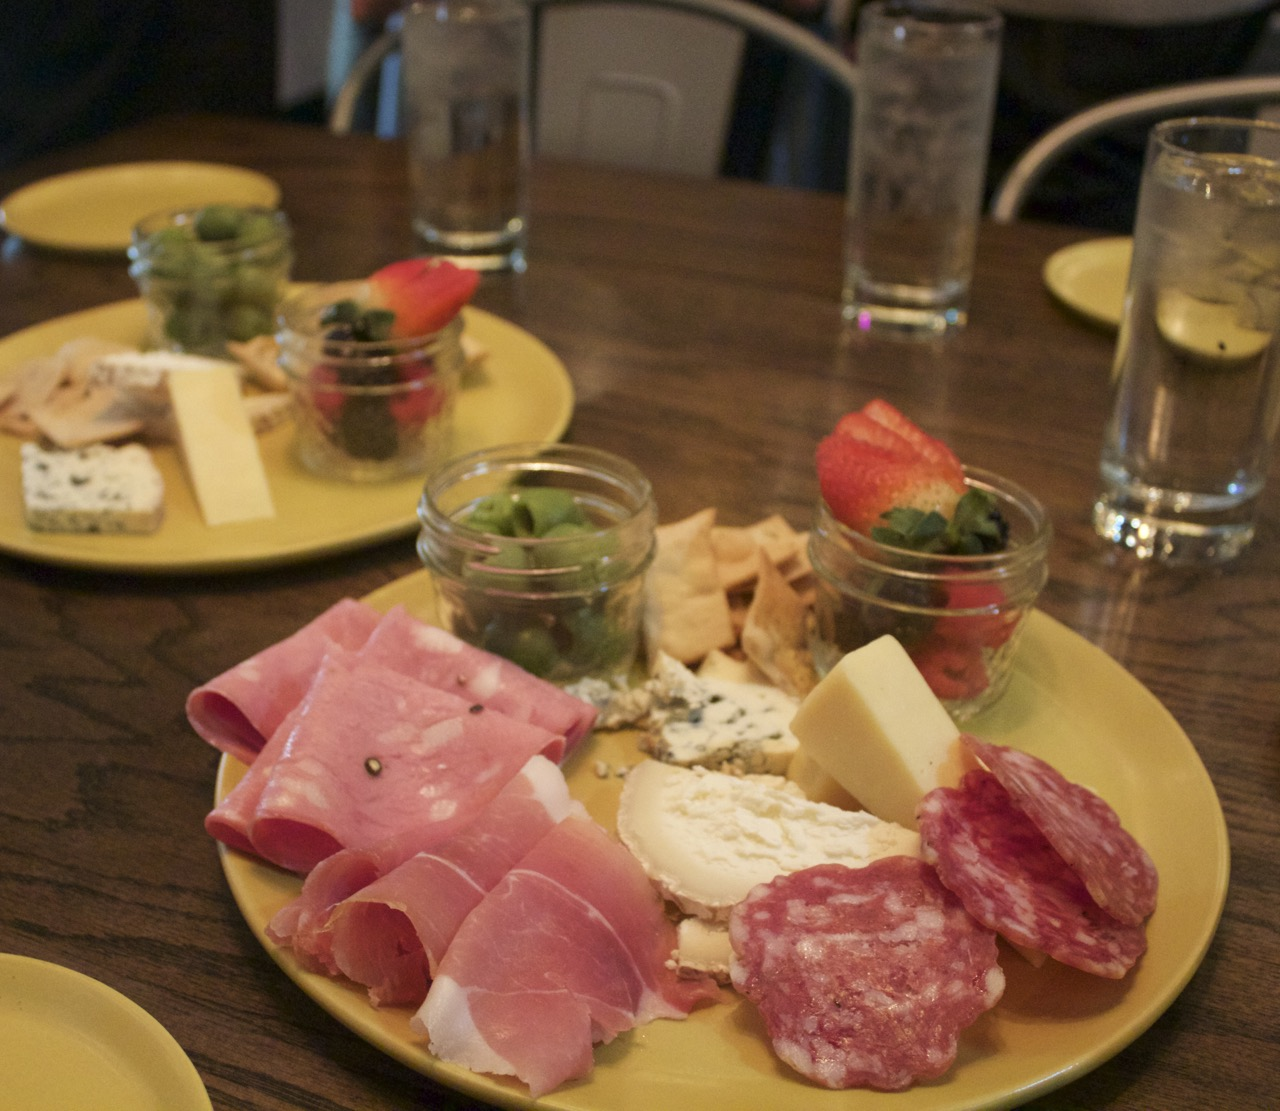 Charcuterie at Goozy by Angela Roberts